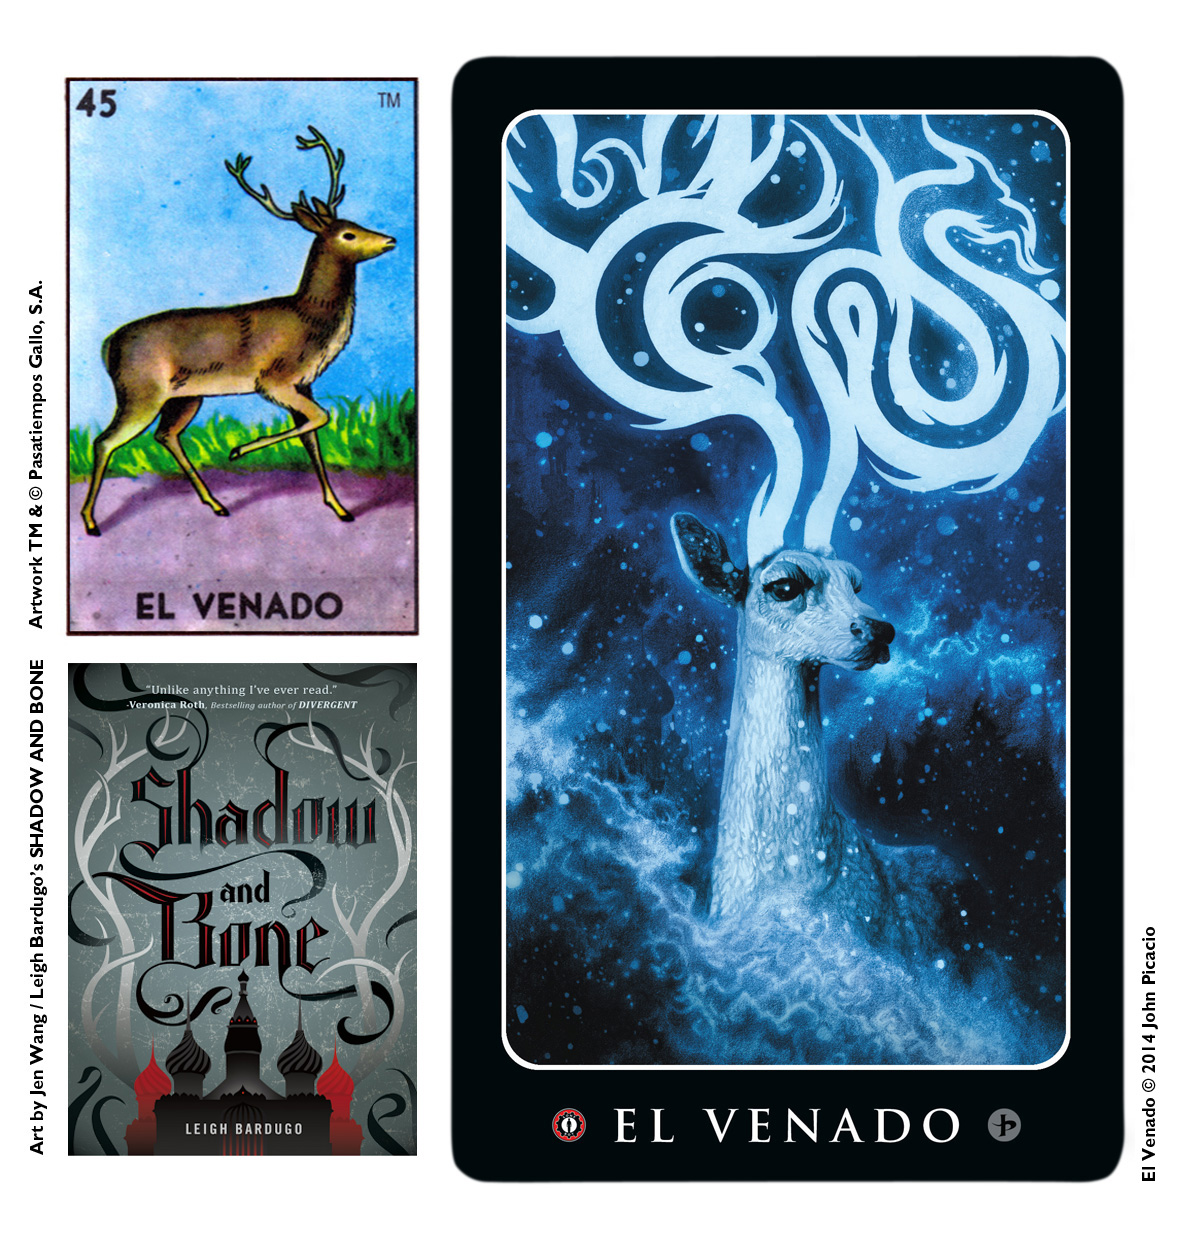 My art for 'El Venado' was inspired by the phenomenal YA novels of Leigh Bardugo.